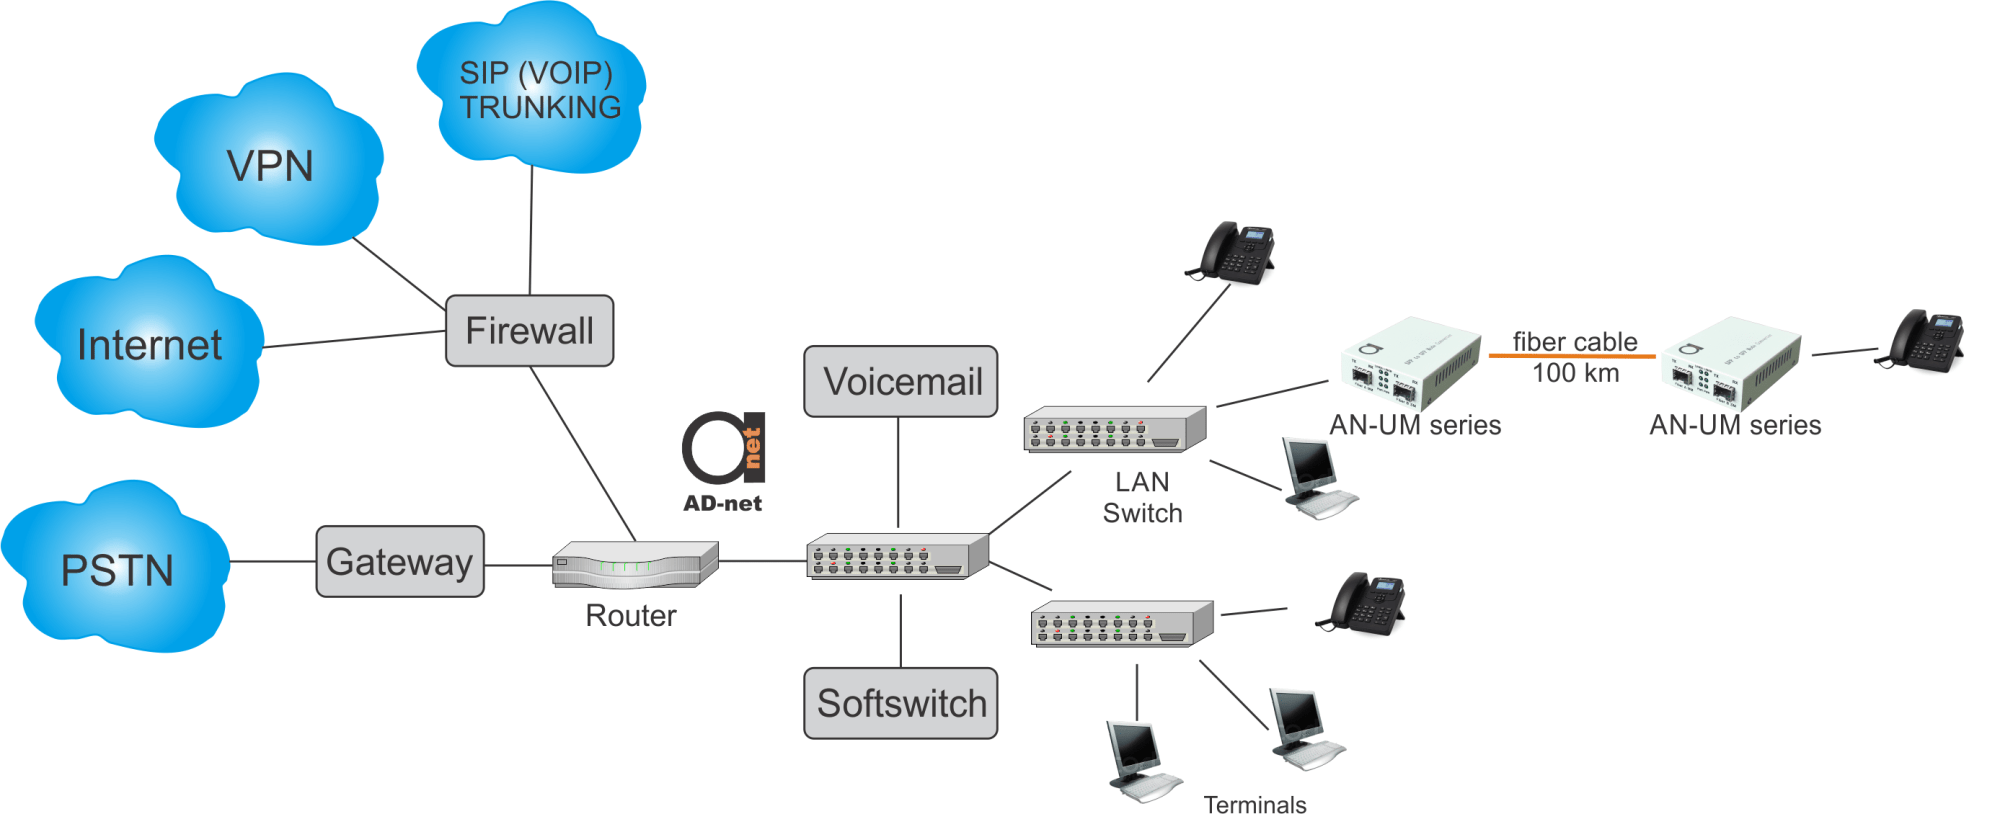 hight resolution of key network elements of typical voip scheme